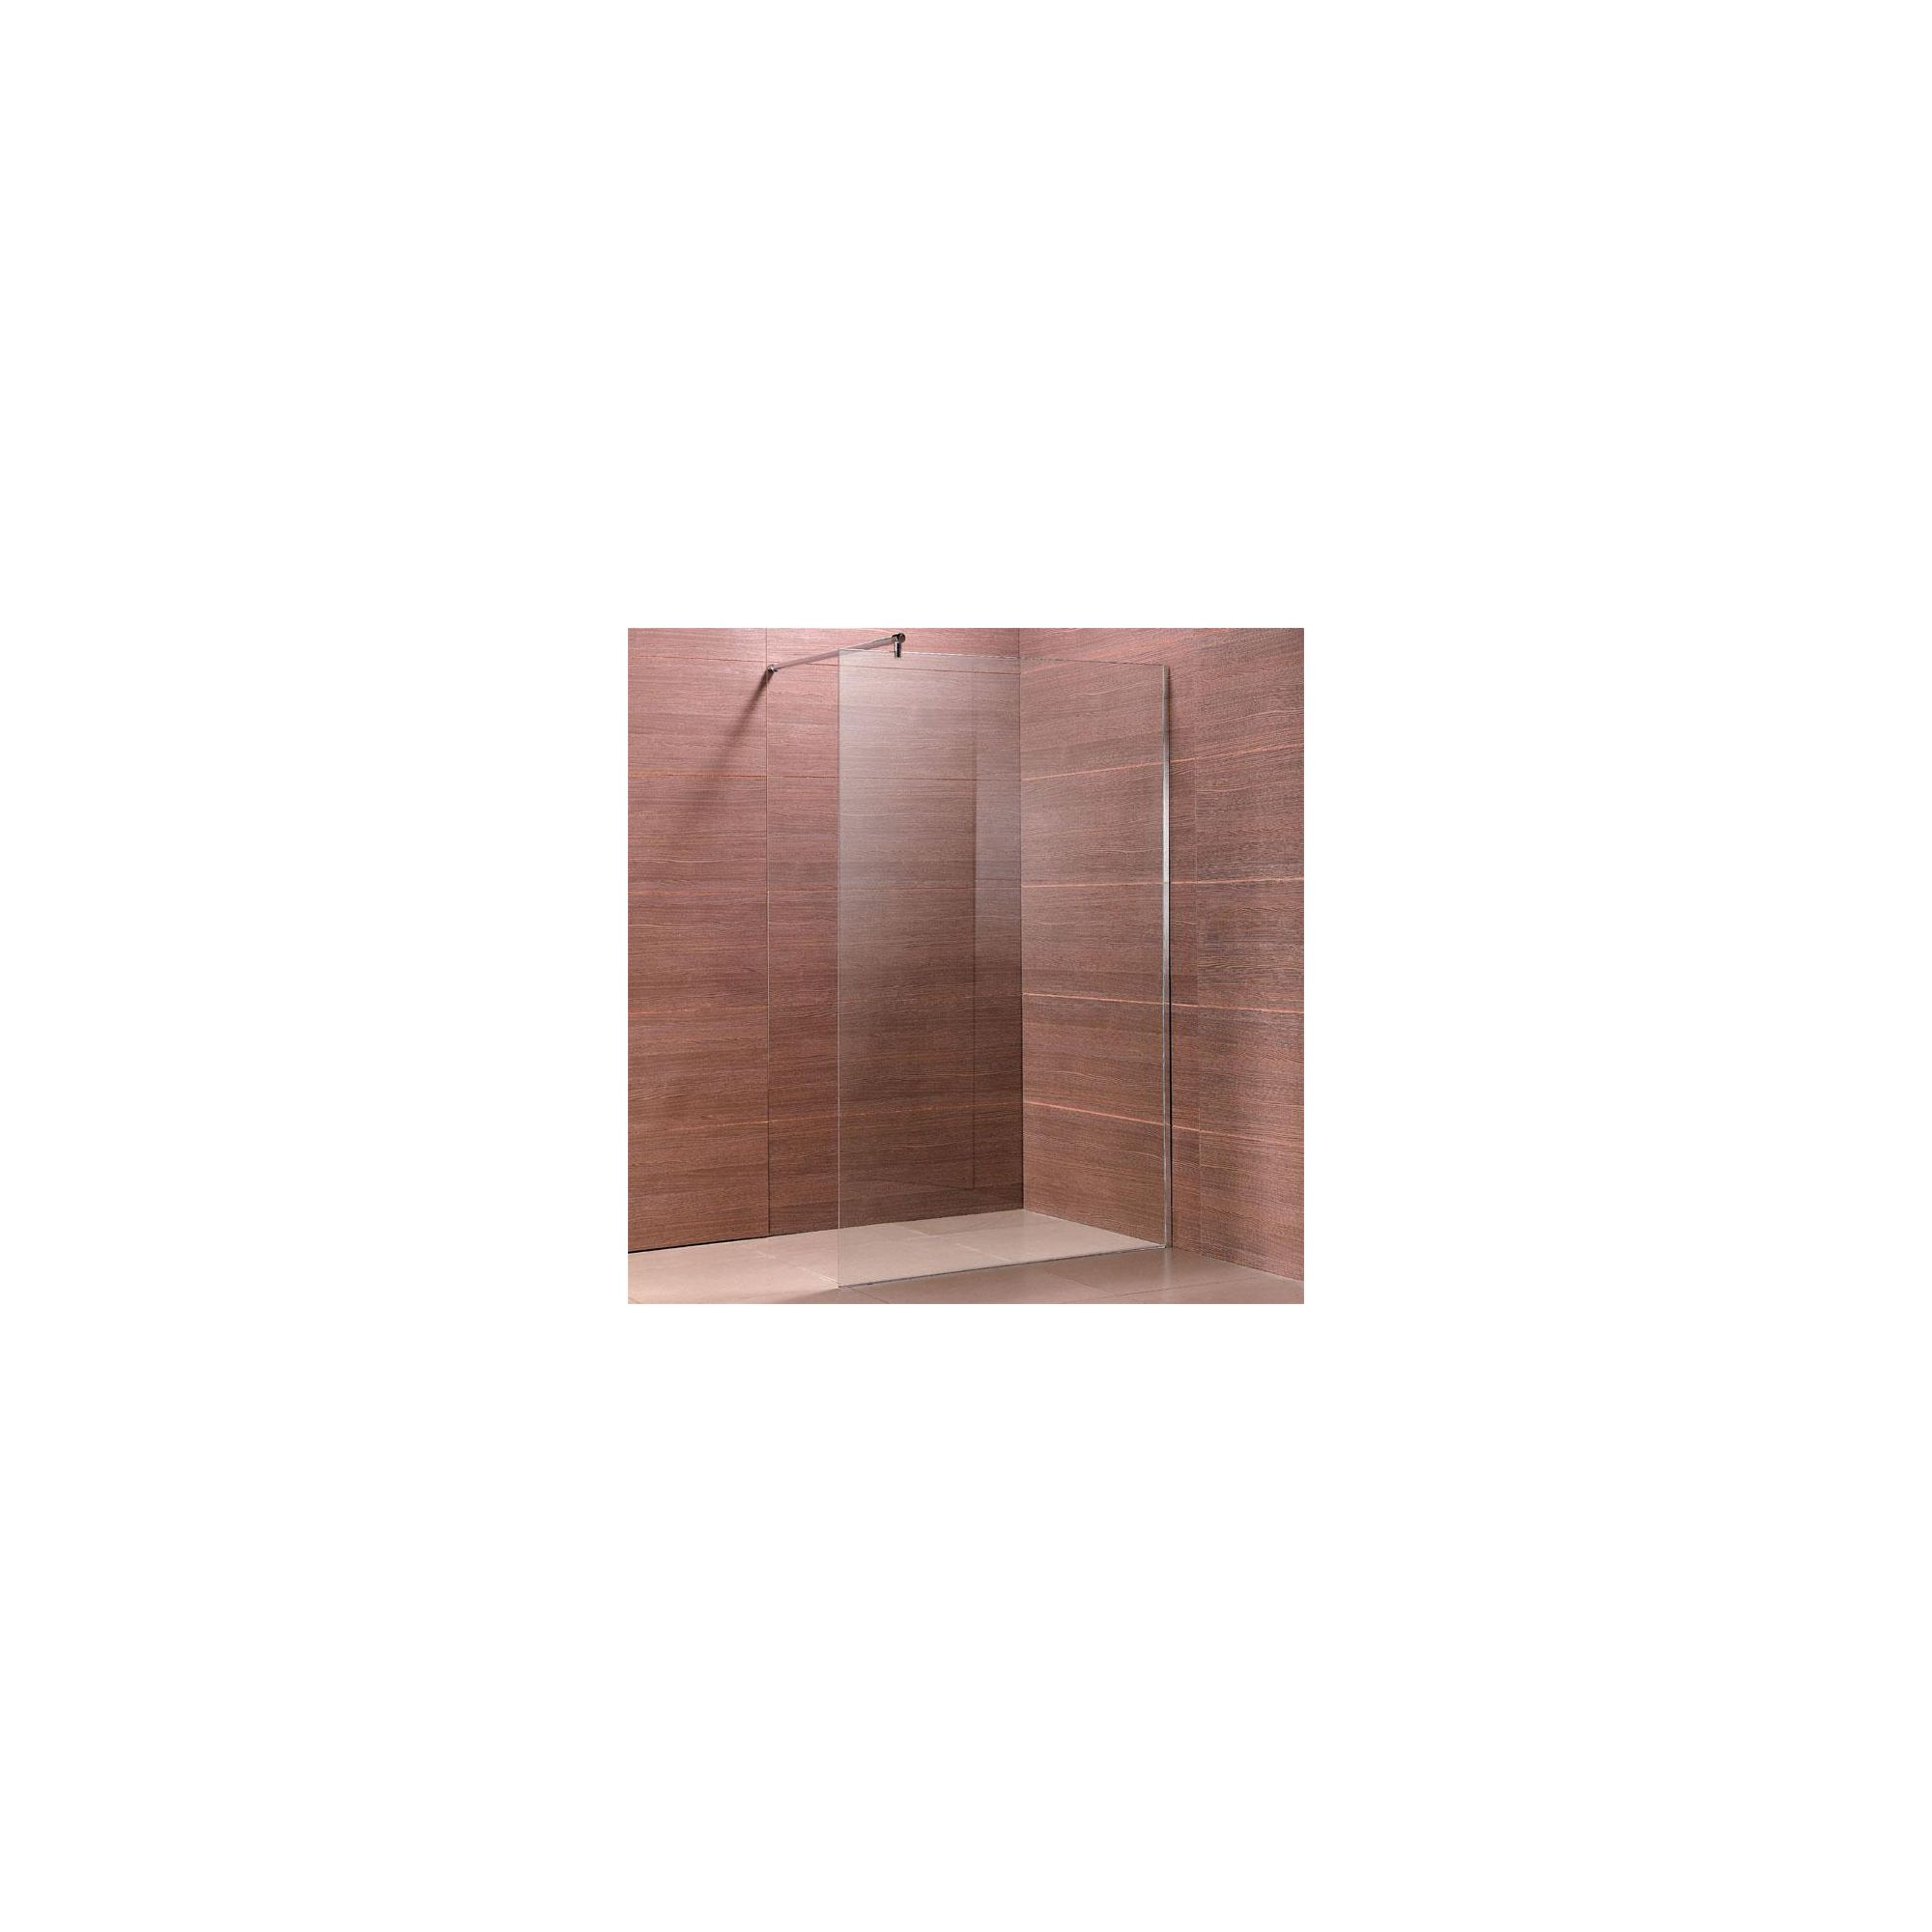 Duchy Premium Wet Room Glass Shower Panel, 1100mm x 800mm, 8mm Glass, Low Profile Tray at Tesco Direct